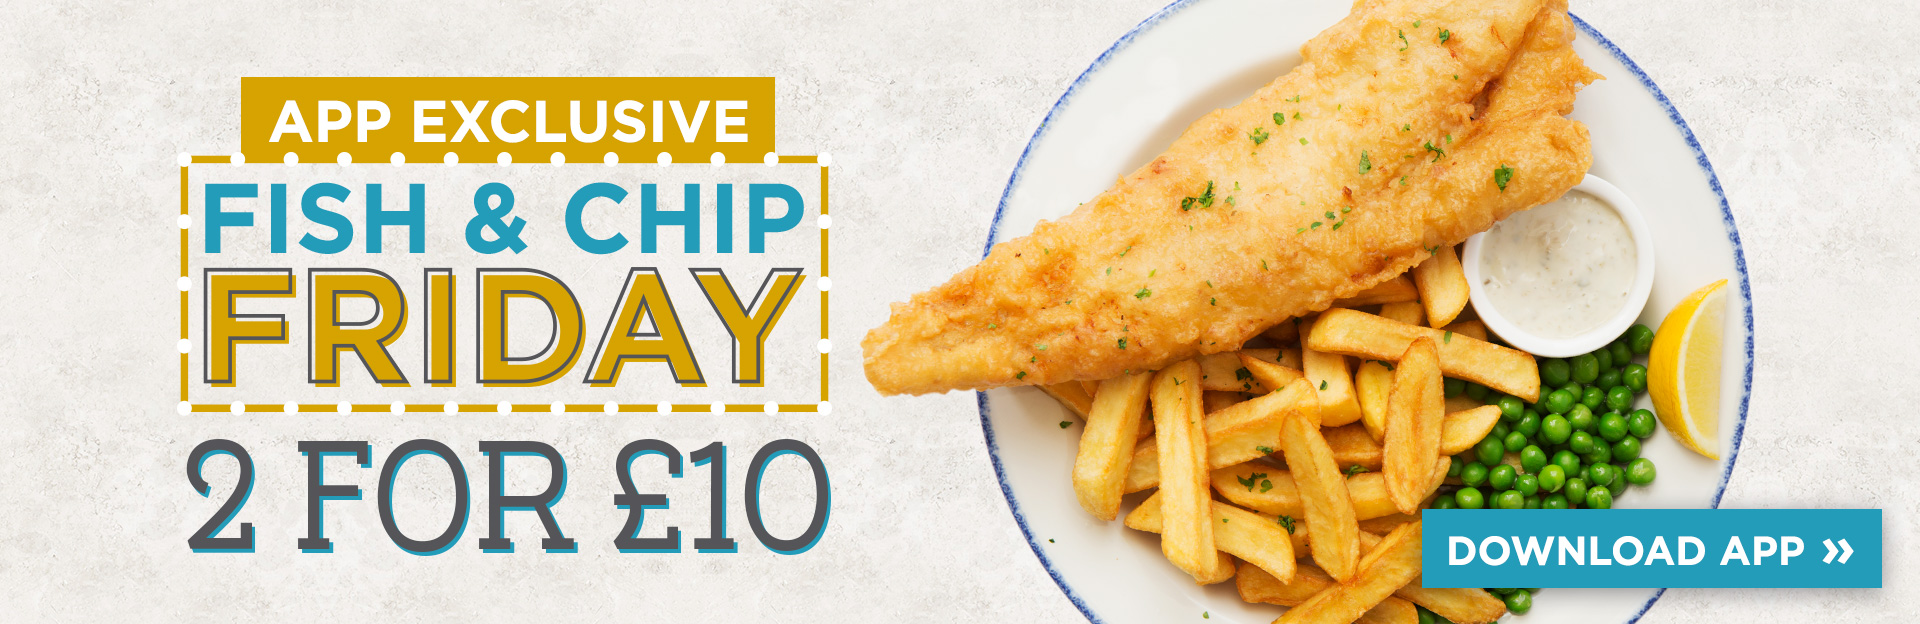 Fish & Chip Friday at Stonehouse